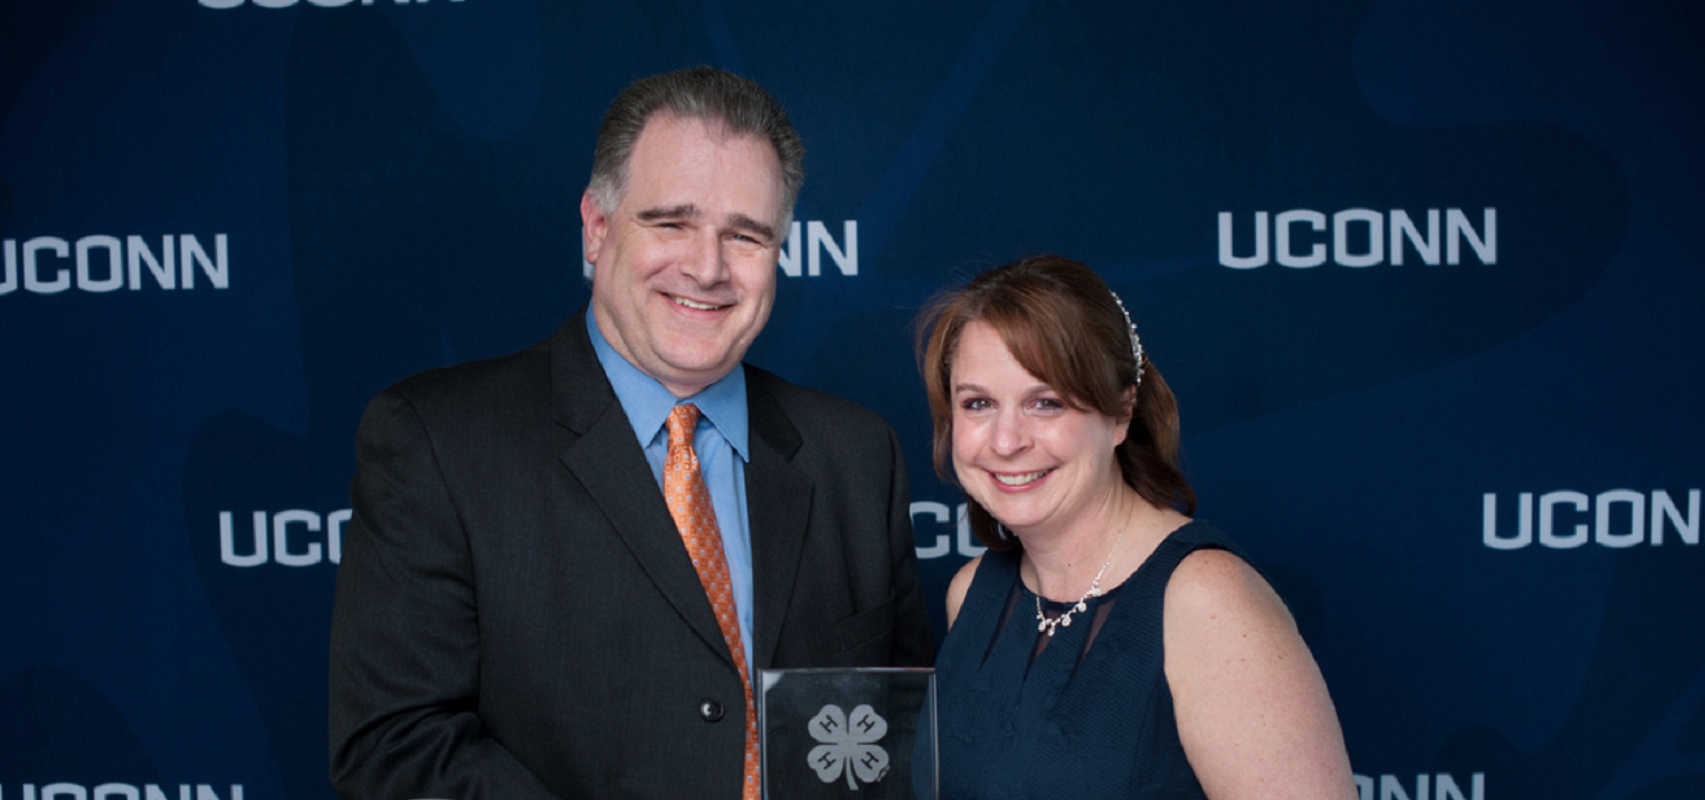 Rachael Manzer, with her husband Ken, receives a 4-H leadership award in 2019. Manzer, a STEM educator who has worked with NASA, is a doctoral candidate in the Neag School of Education. (Courtesy of Defining Studios)